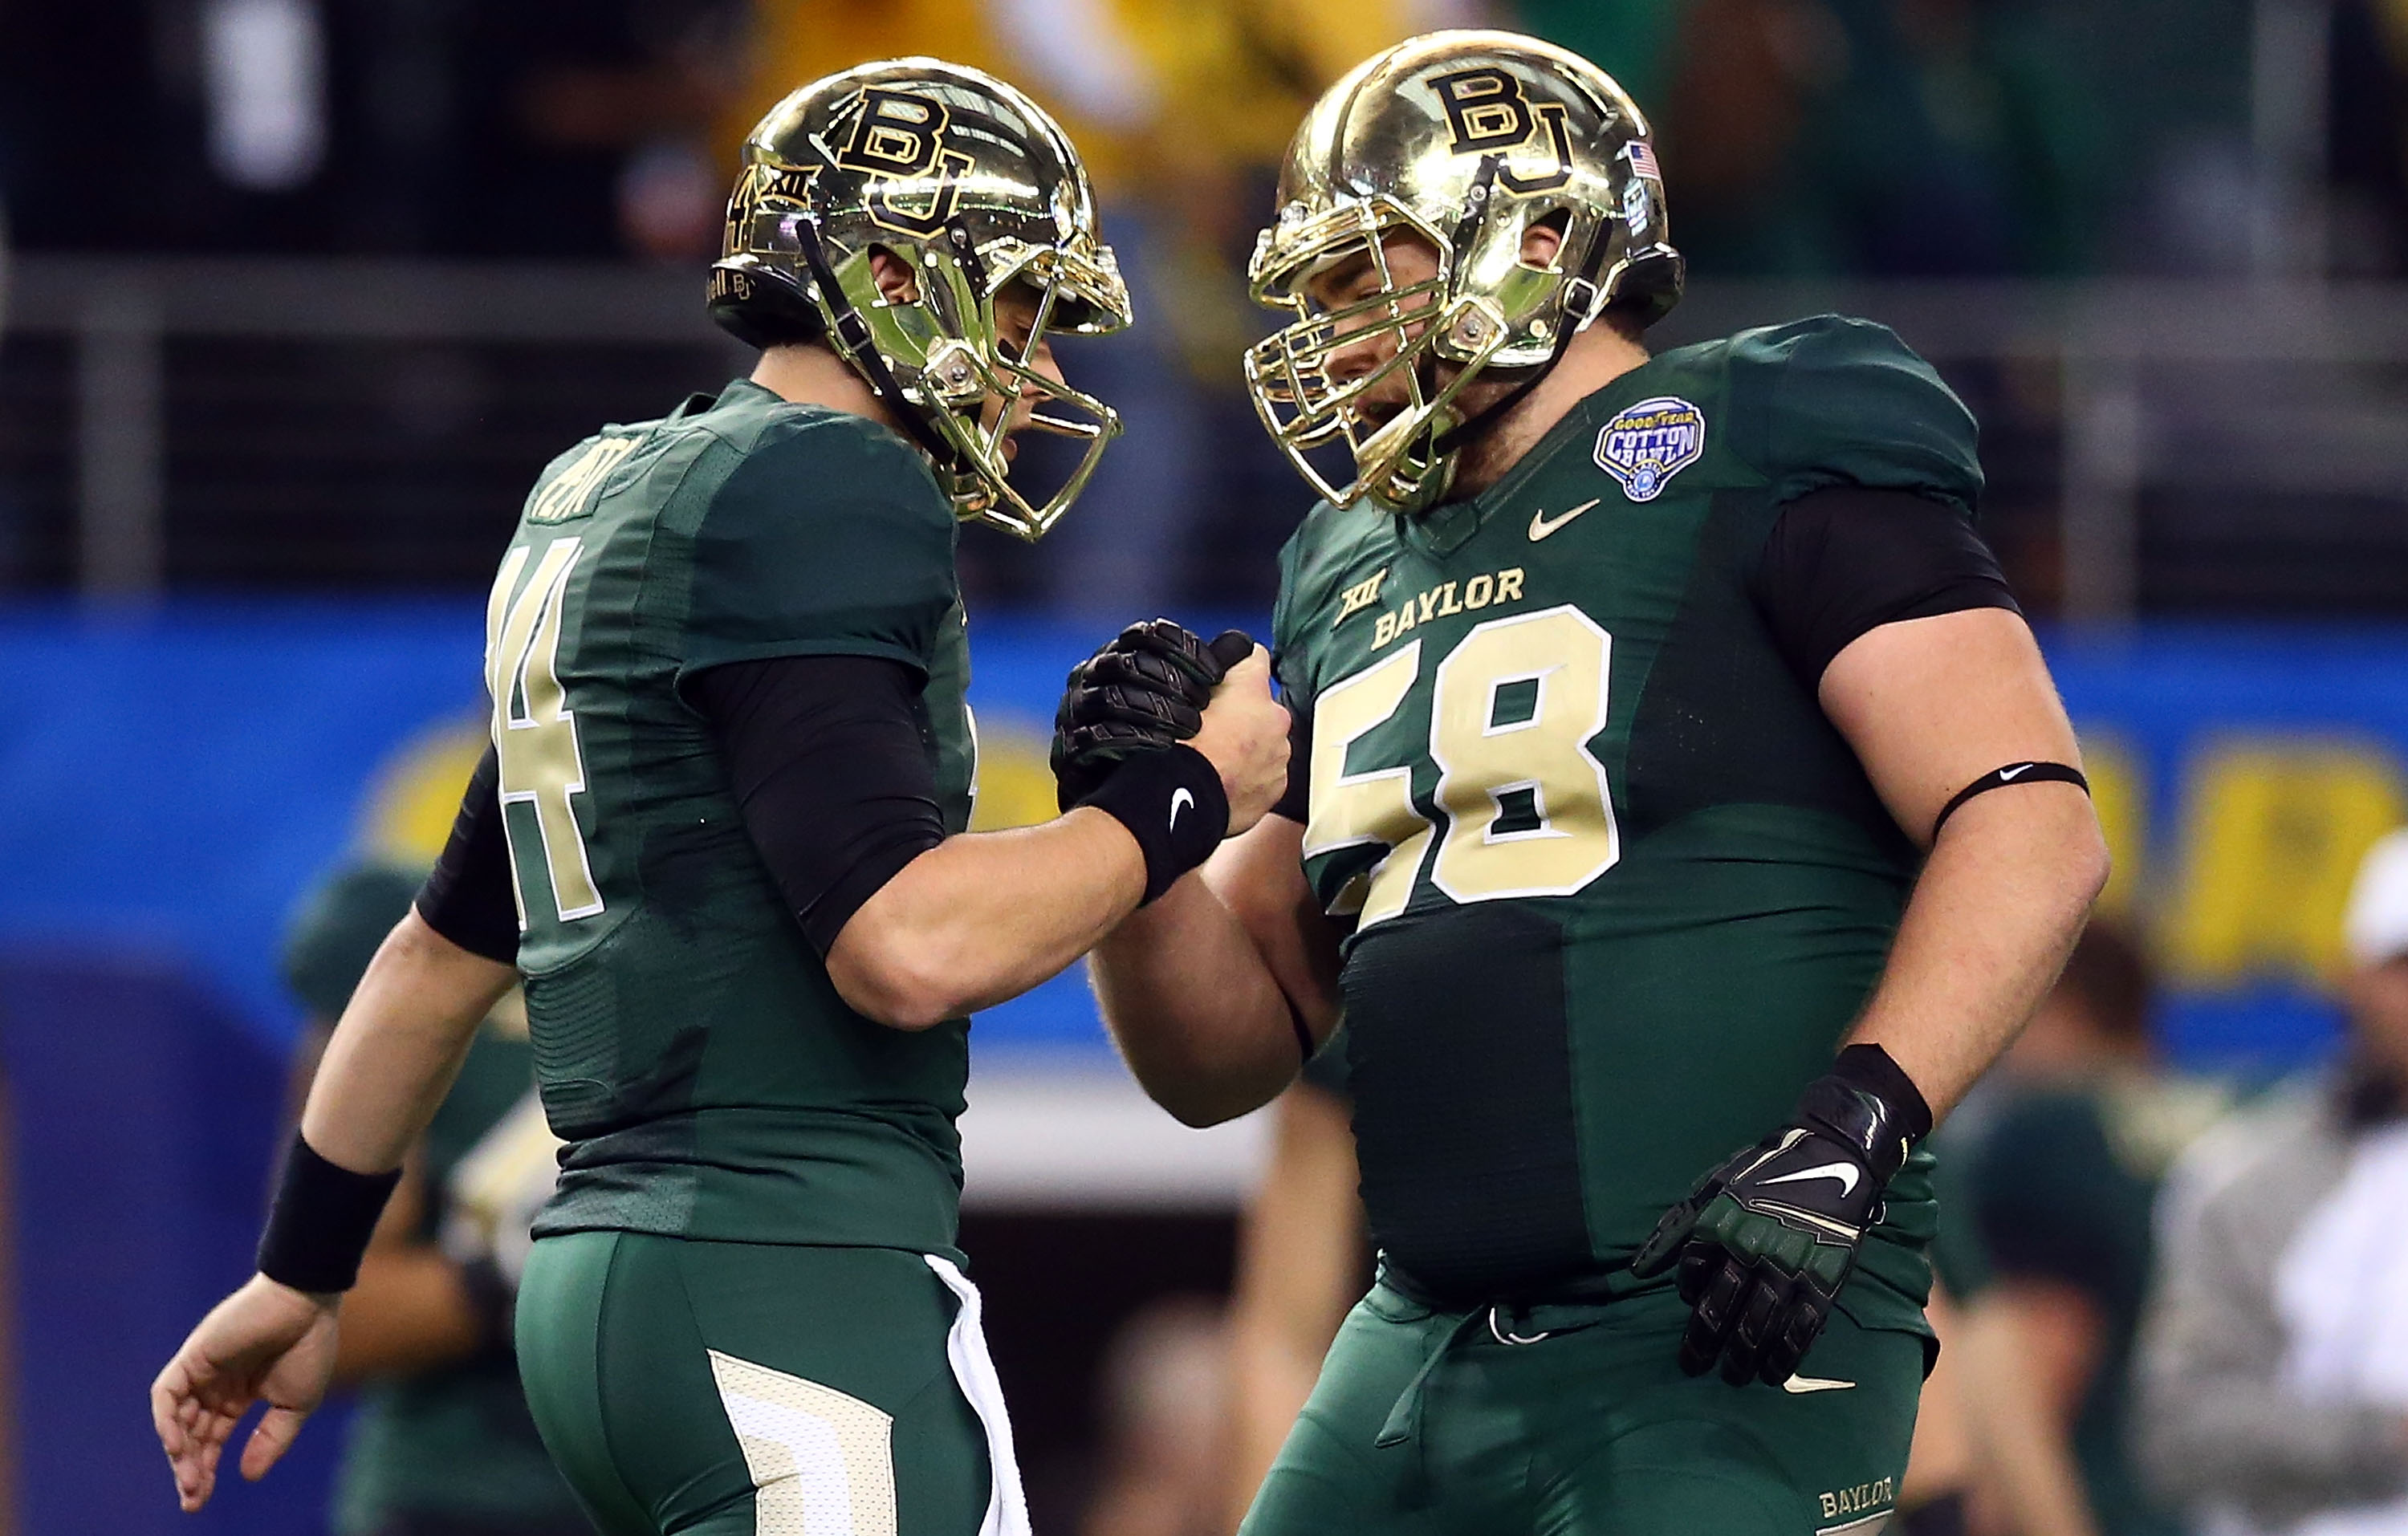 ARLINGTON, TX - JANUARY 01:  Bryce Petty #14 of the Baylor Bears and Spencer Drango #58 of the Baylor Bears celebrate after a touchdown against the  Michigan State Spartans during the second half of the Goodyear Cotton Bowl Classic at AT&T Stadium on January 1, 2015 in Arlington, Texas.  (Photo by Ronald Martinez/Getty Images)